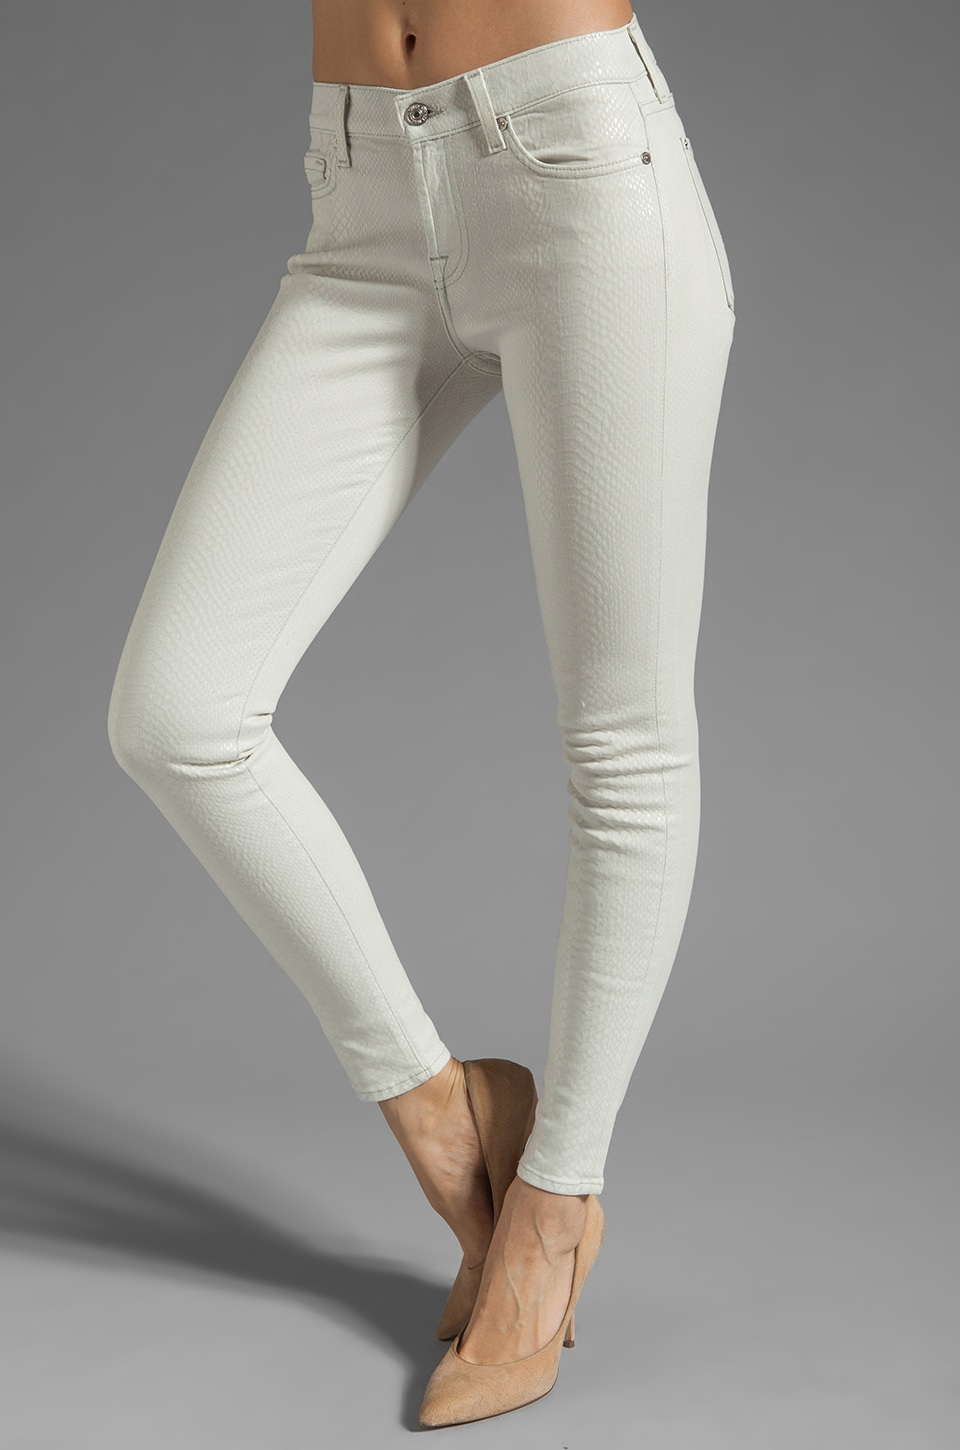 7 For All Mankind The Skinny in White Clear Snake